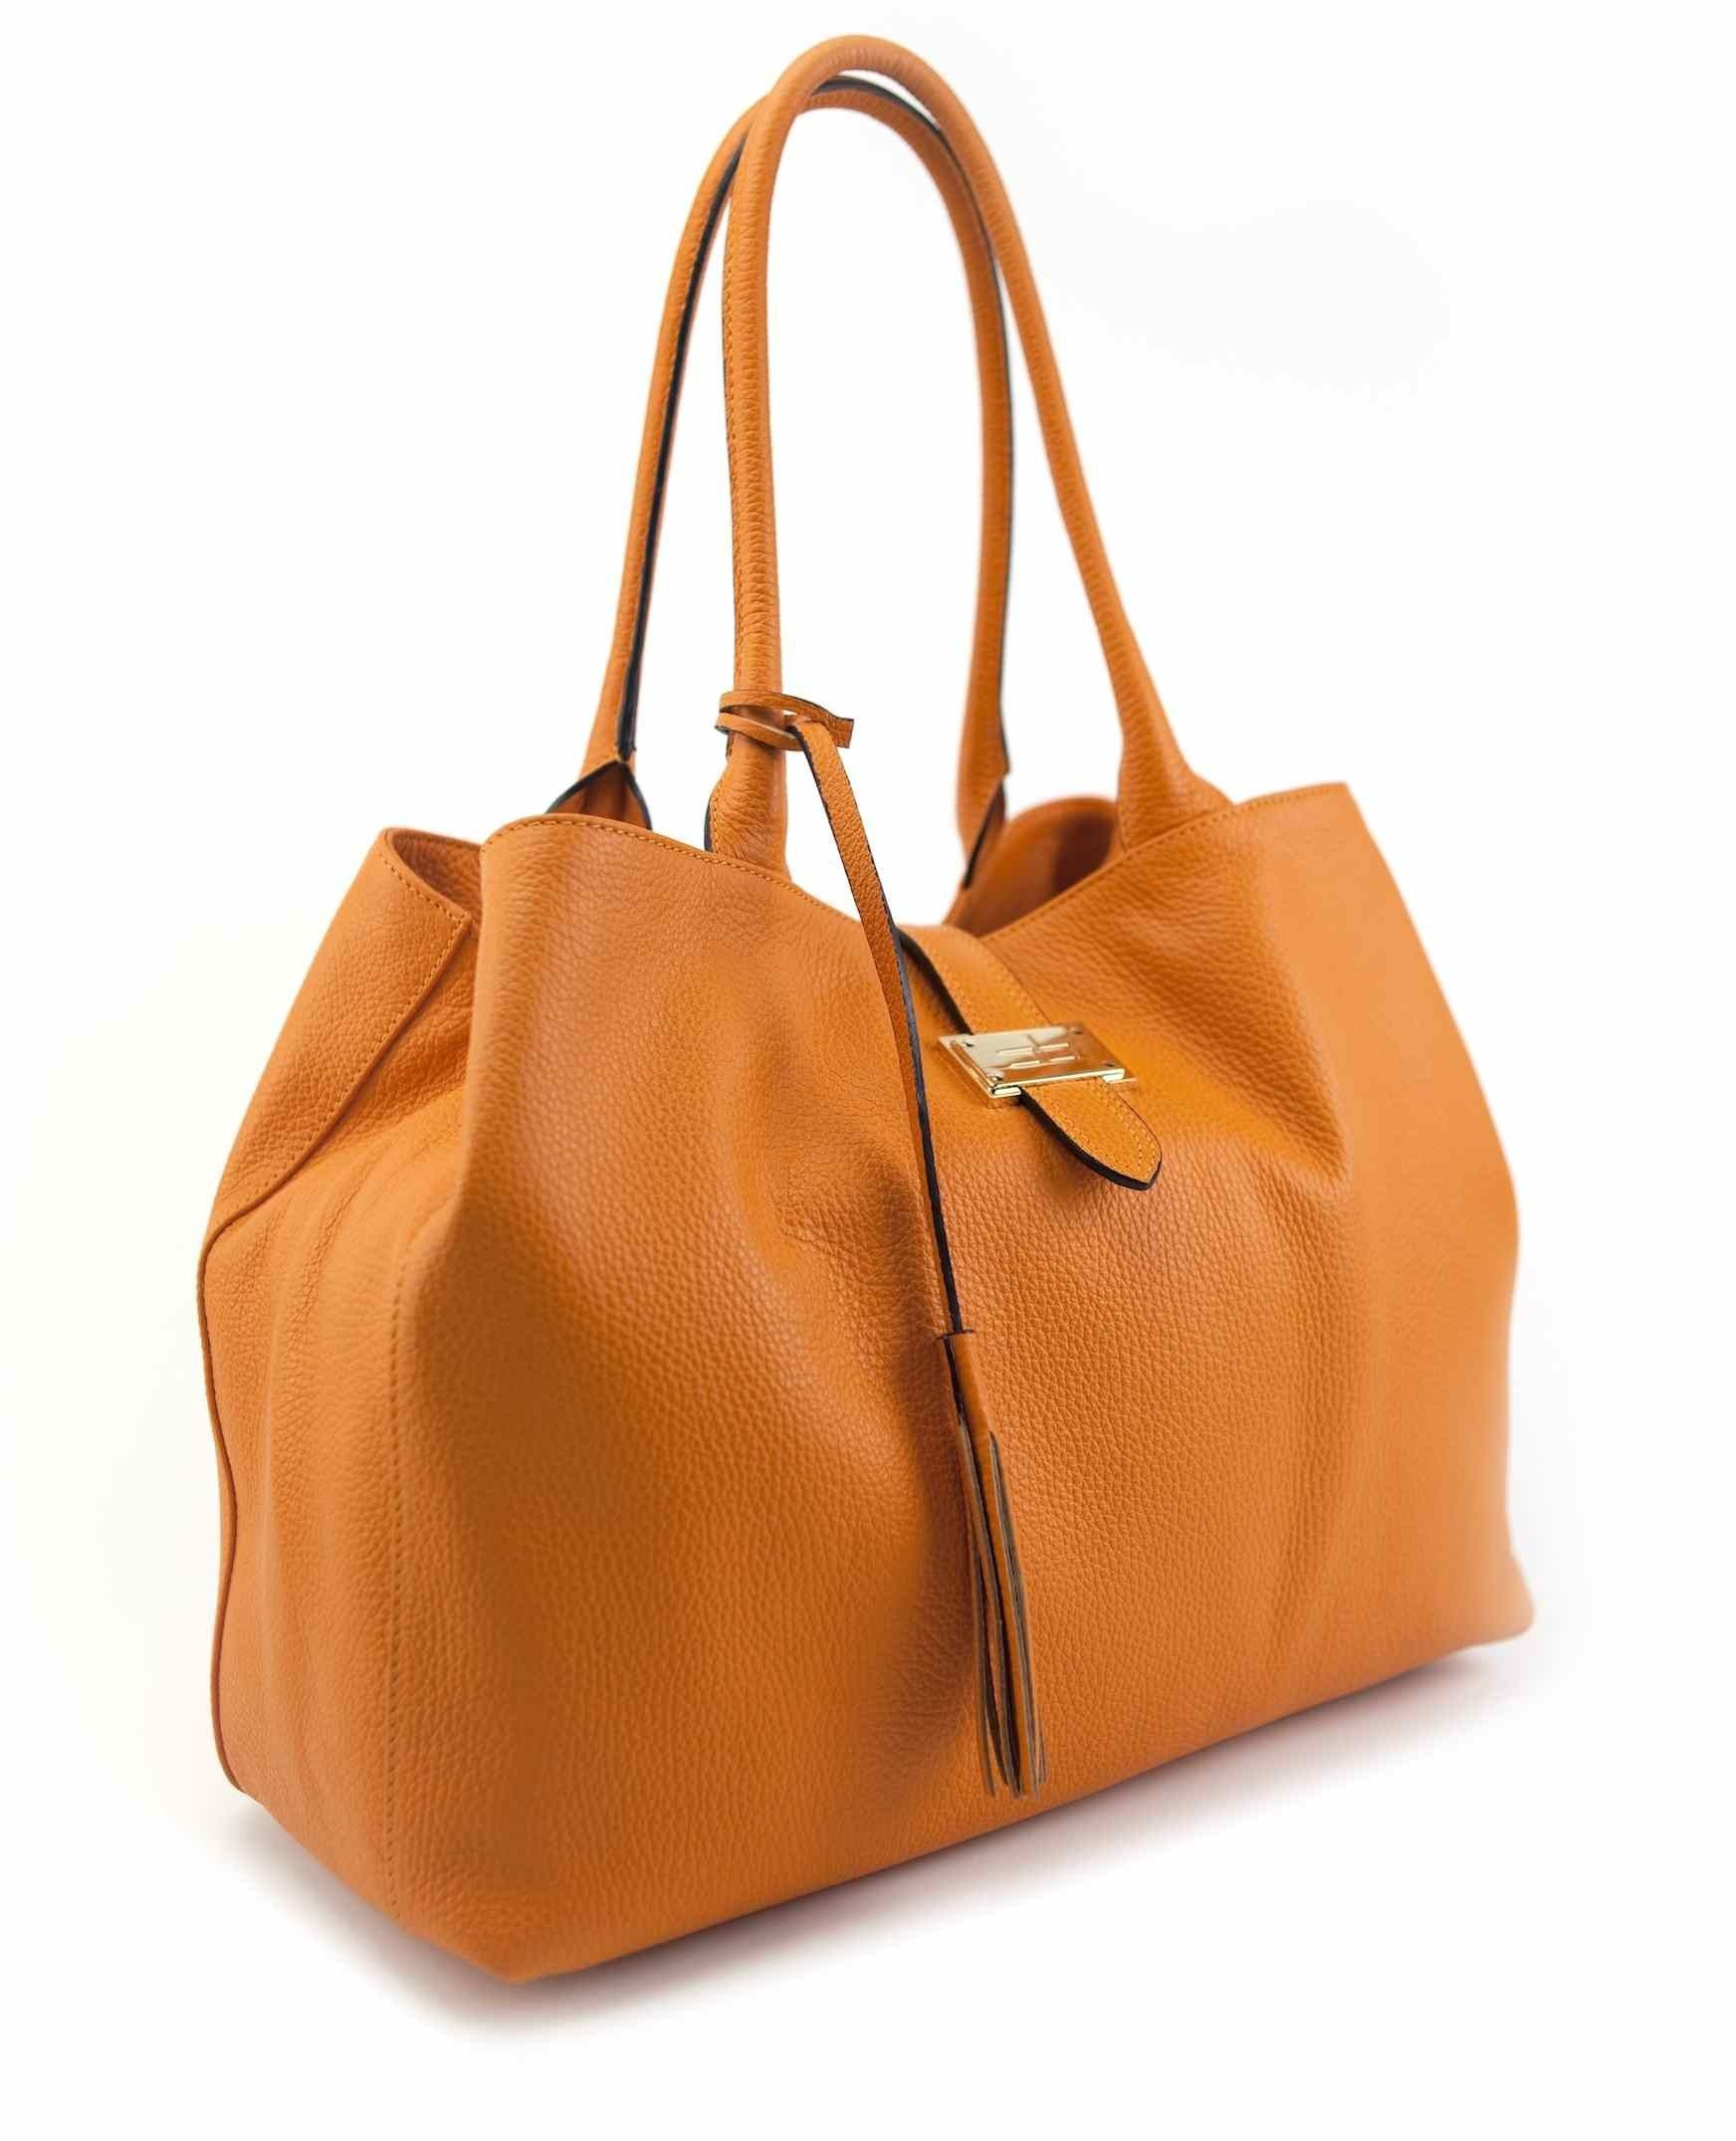 7e8628ebe Courage B bag... My new favorite :) only I need it in one of the blue  shades #betterstartsaving